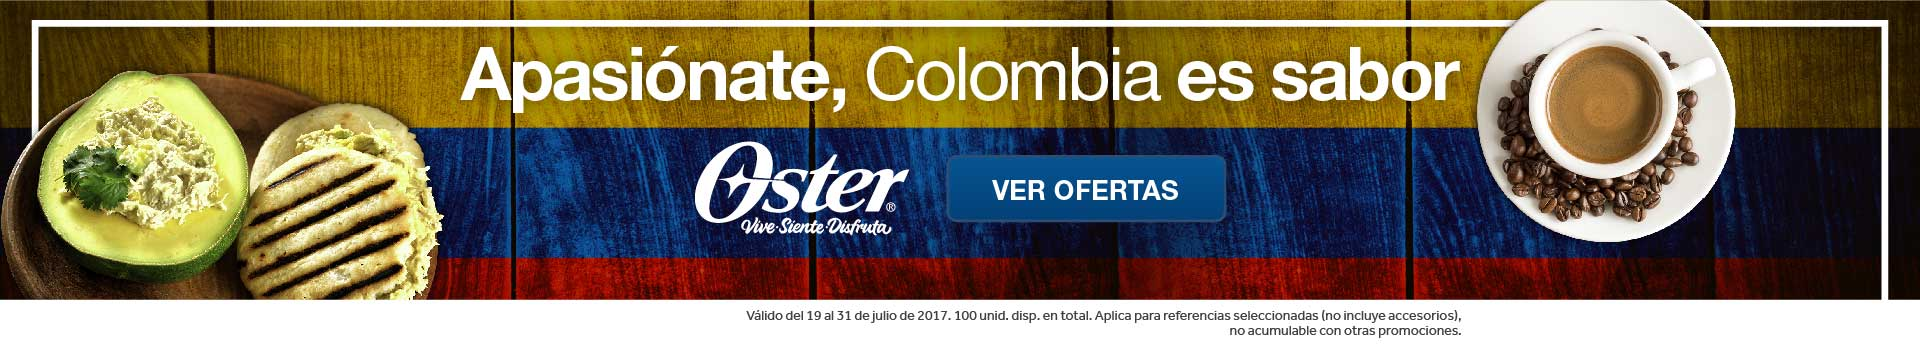 CAT ELECT - Pauta OSTER Colombia es sabor - jul19